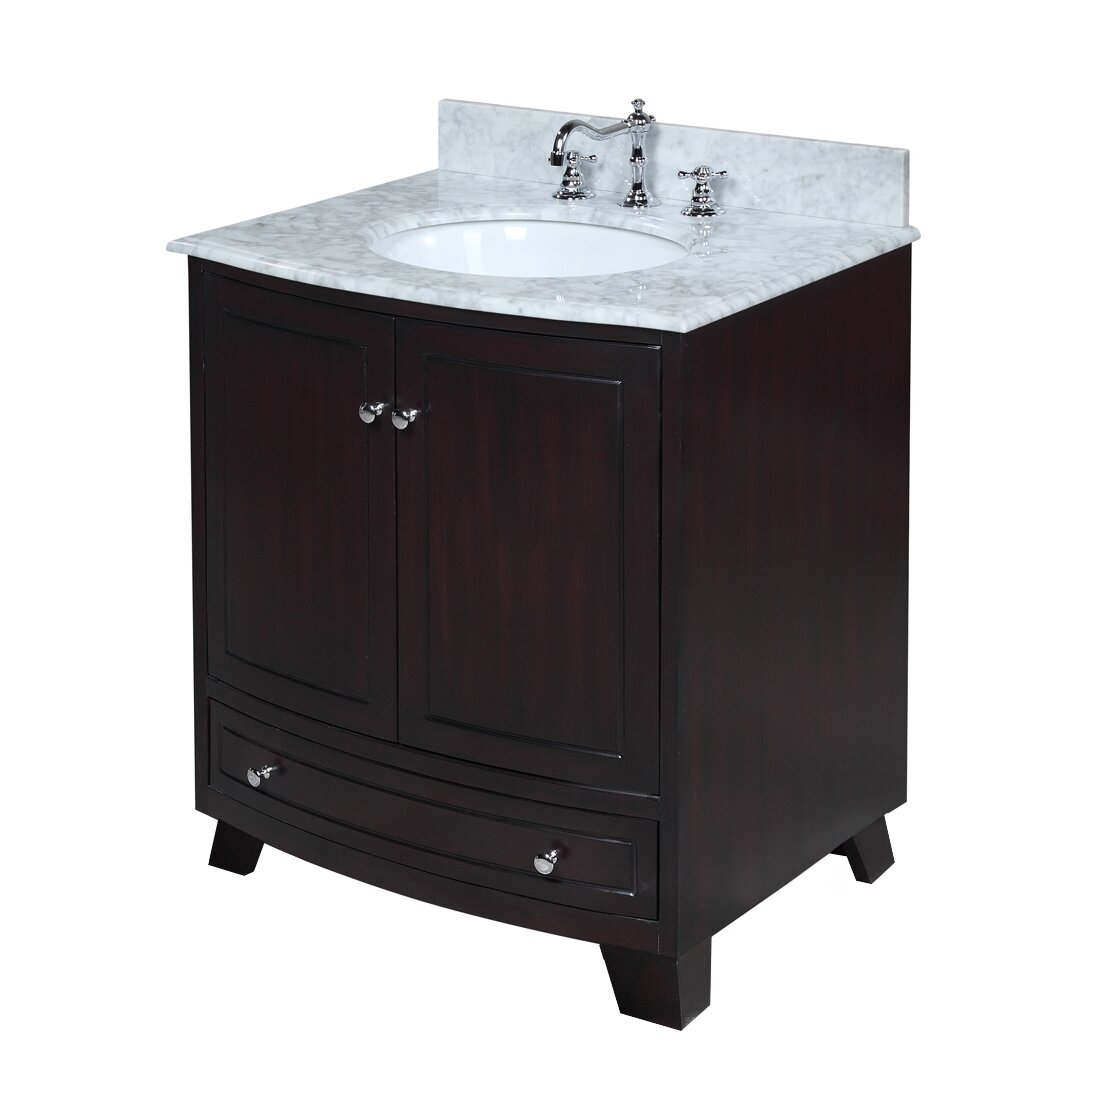 Kbc palazzo 30 single bathroom vanity set reviews wayfair for Bath and vanity set